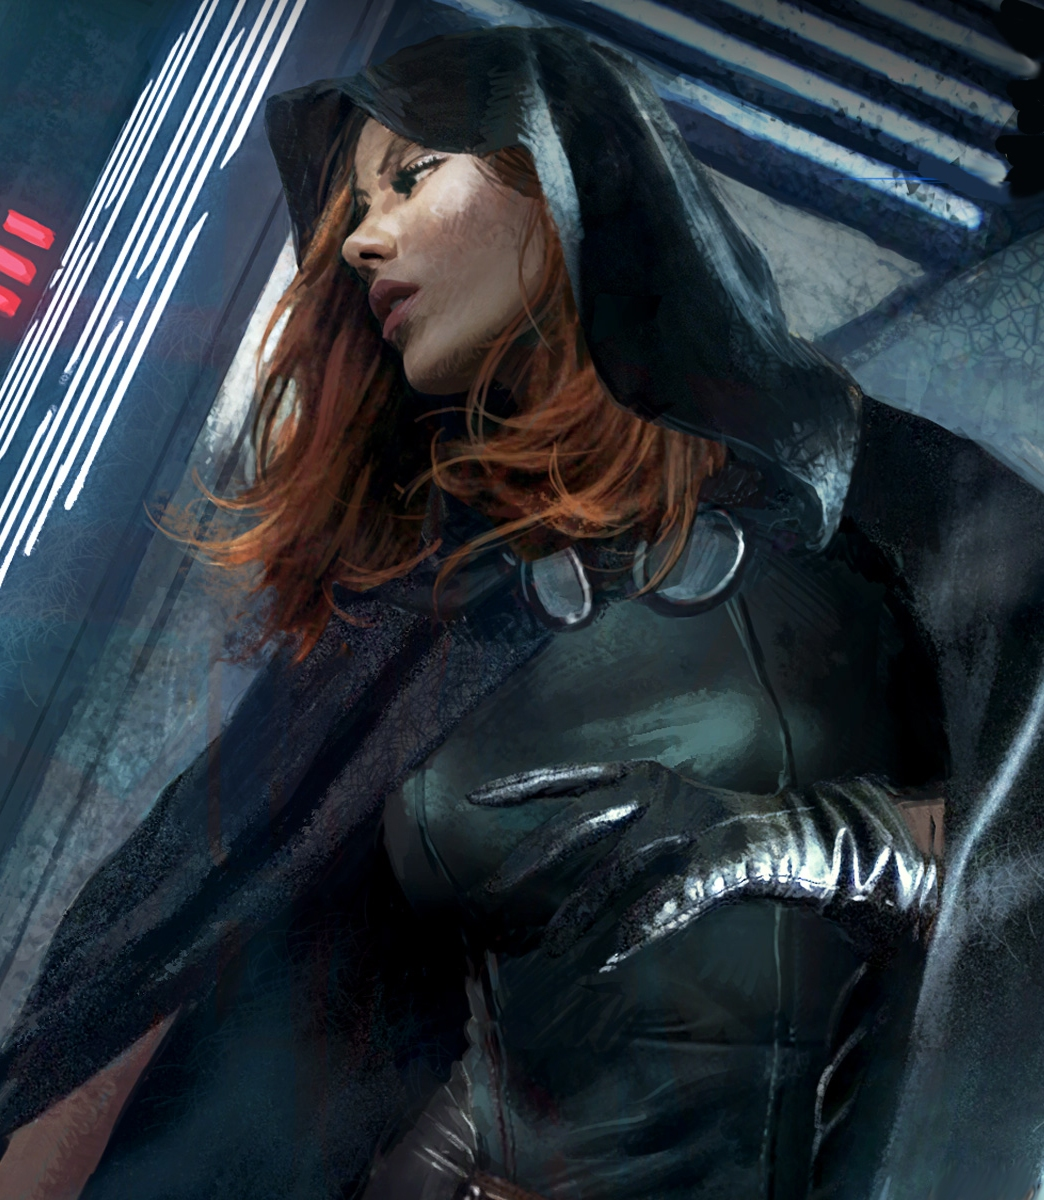 Star-wars-mara-jade-skywalker-pictures.jpg